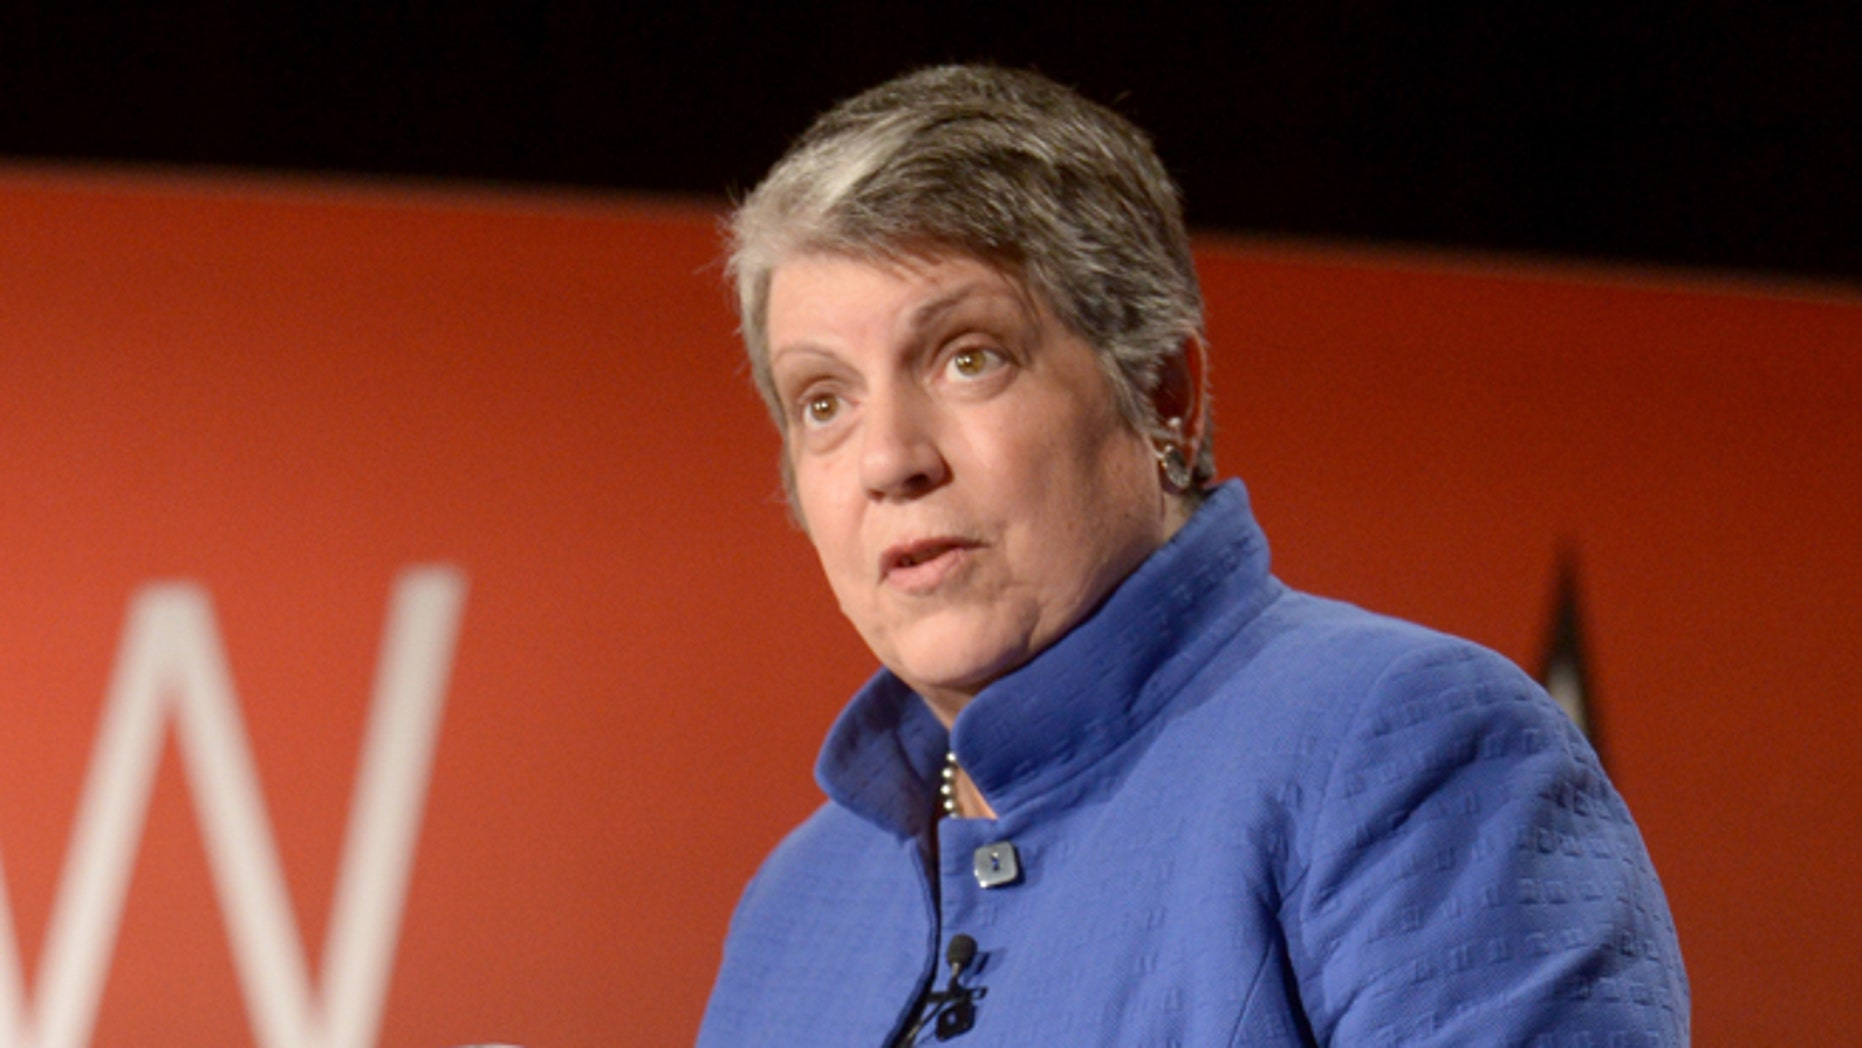 SAN FRANCISCO, CA - MAY 29:  The University of California President Janet Napolitano speaks onstage during The New York Times Health For Tomorrow Conference at Mission Bay Conference Center at UCSF on May 29, 2014 in San Francisco, California.  (Photo by Michael Loccisano/Getty Images for New York Times)